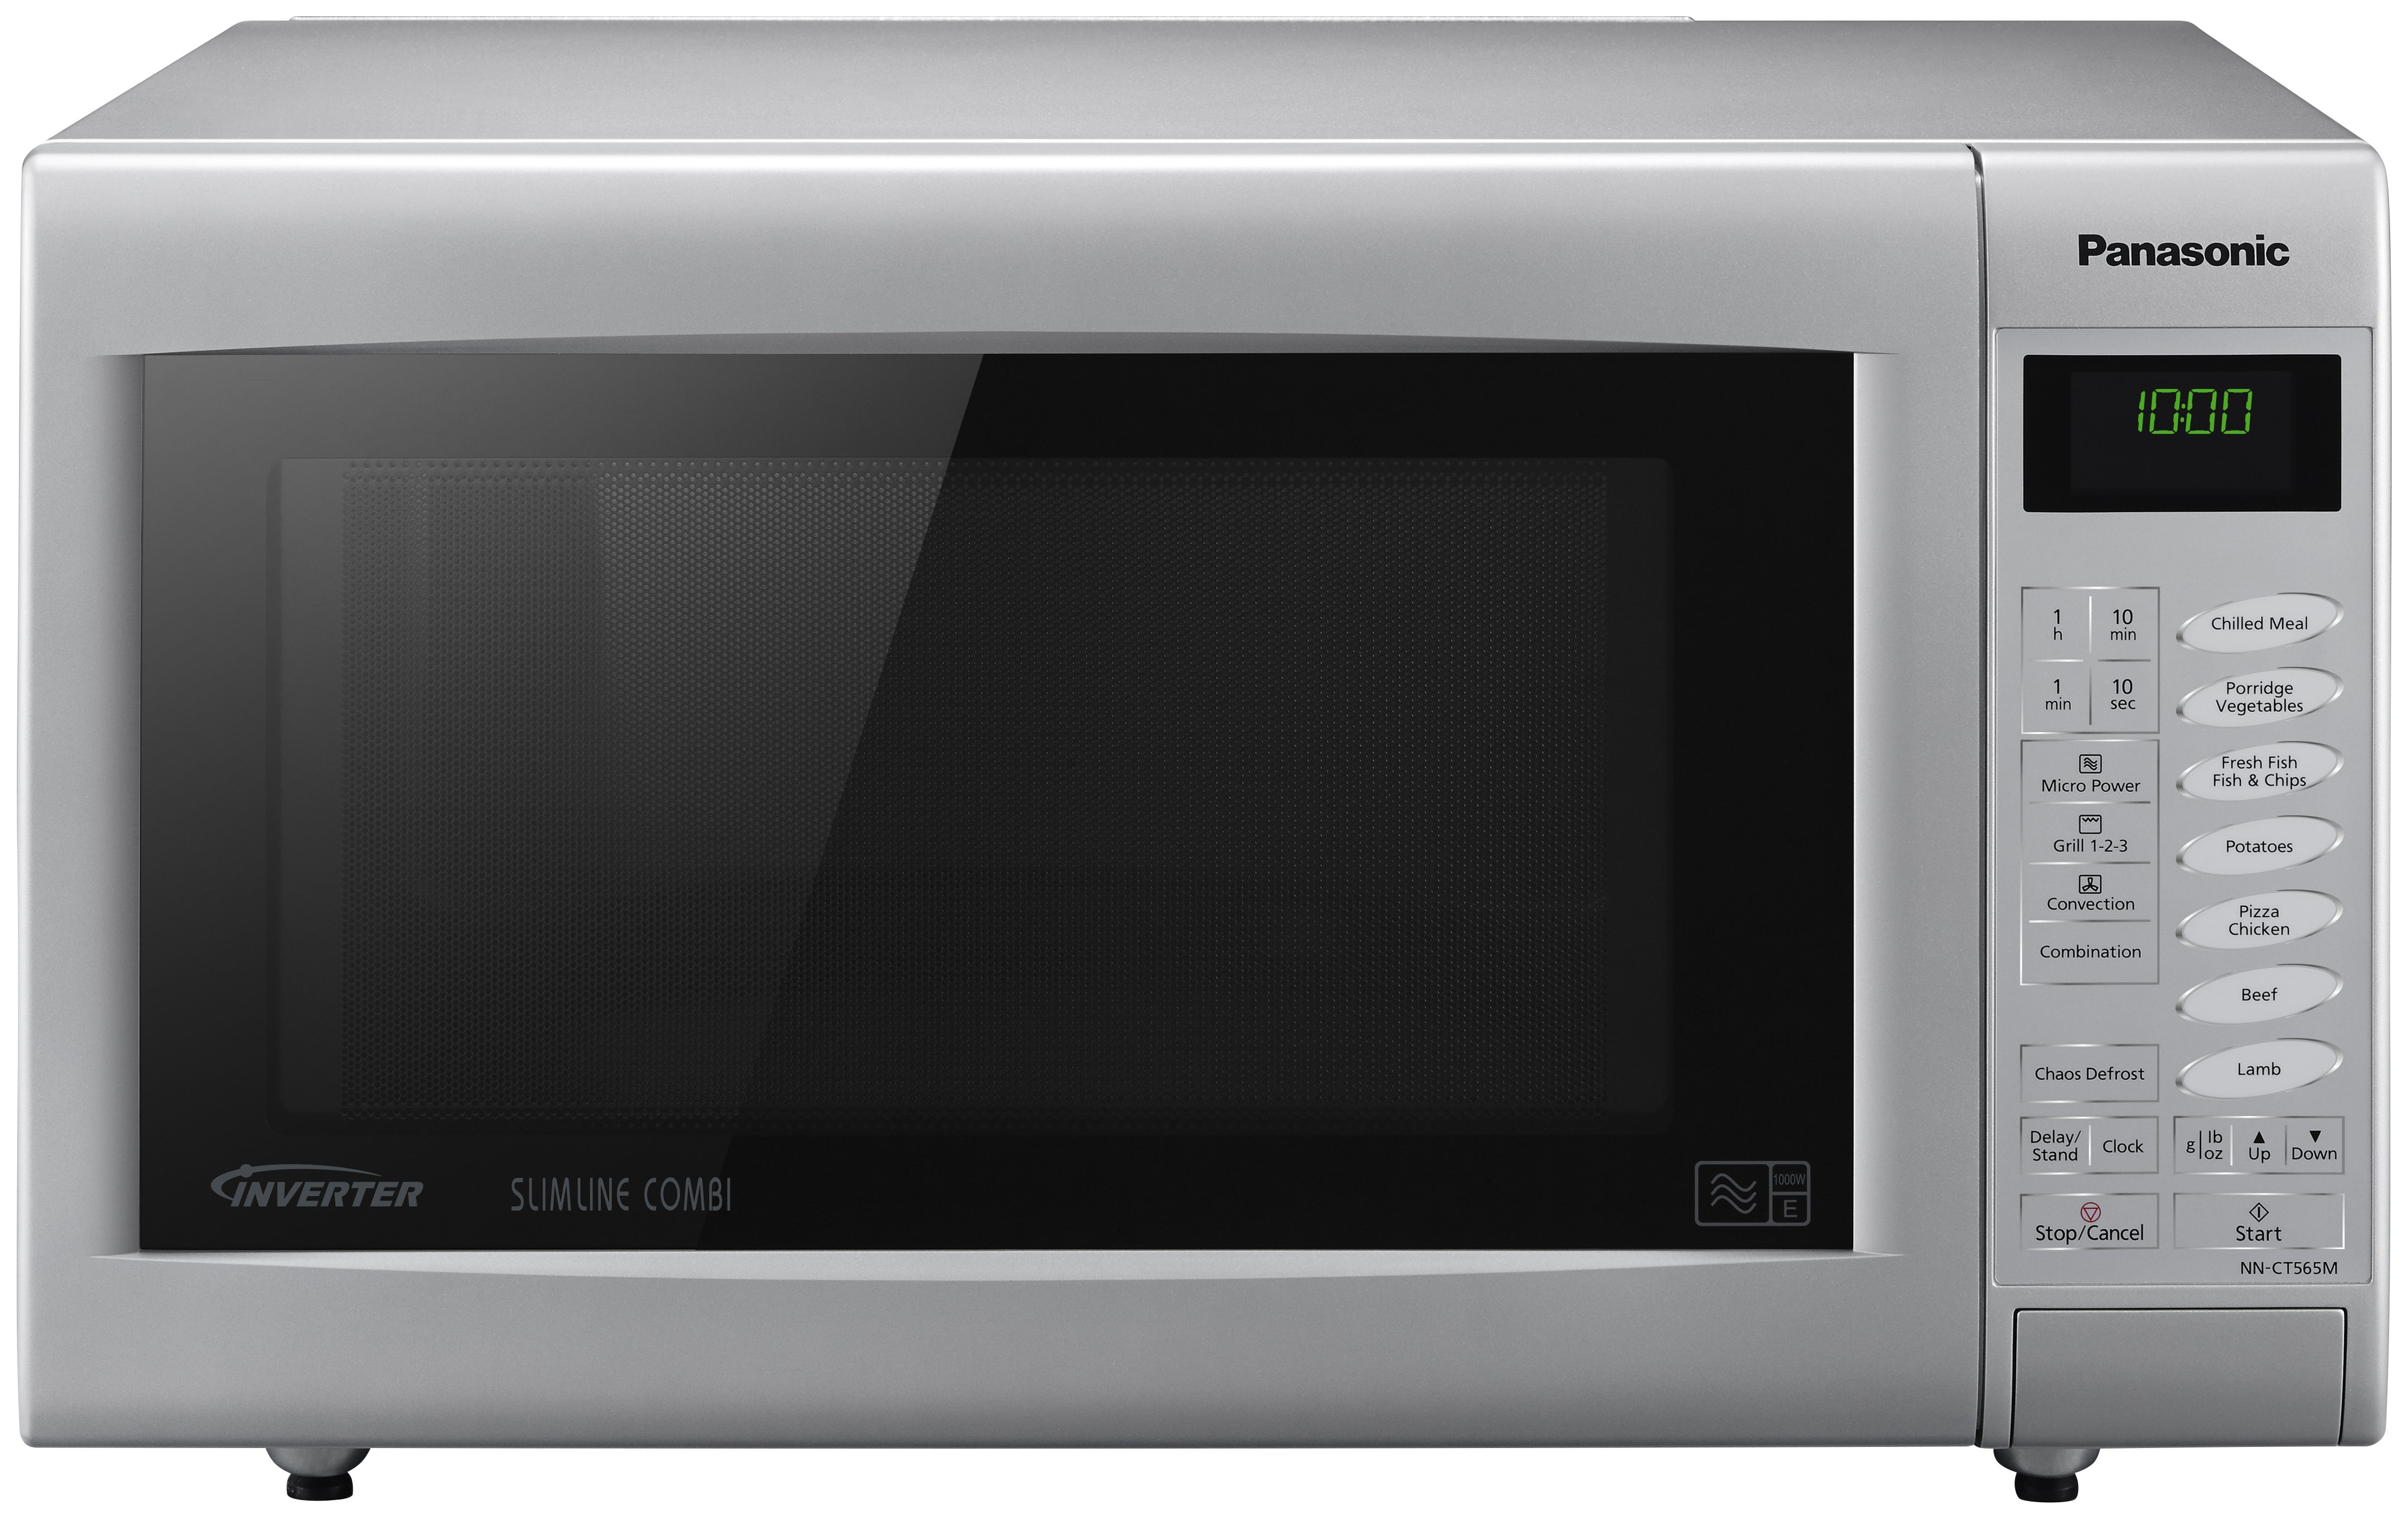 Panasonic - Combination Microwave - NN-CT565M 27L Touch -Silver